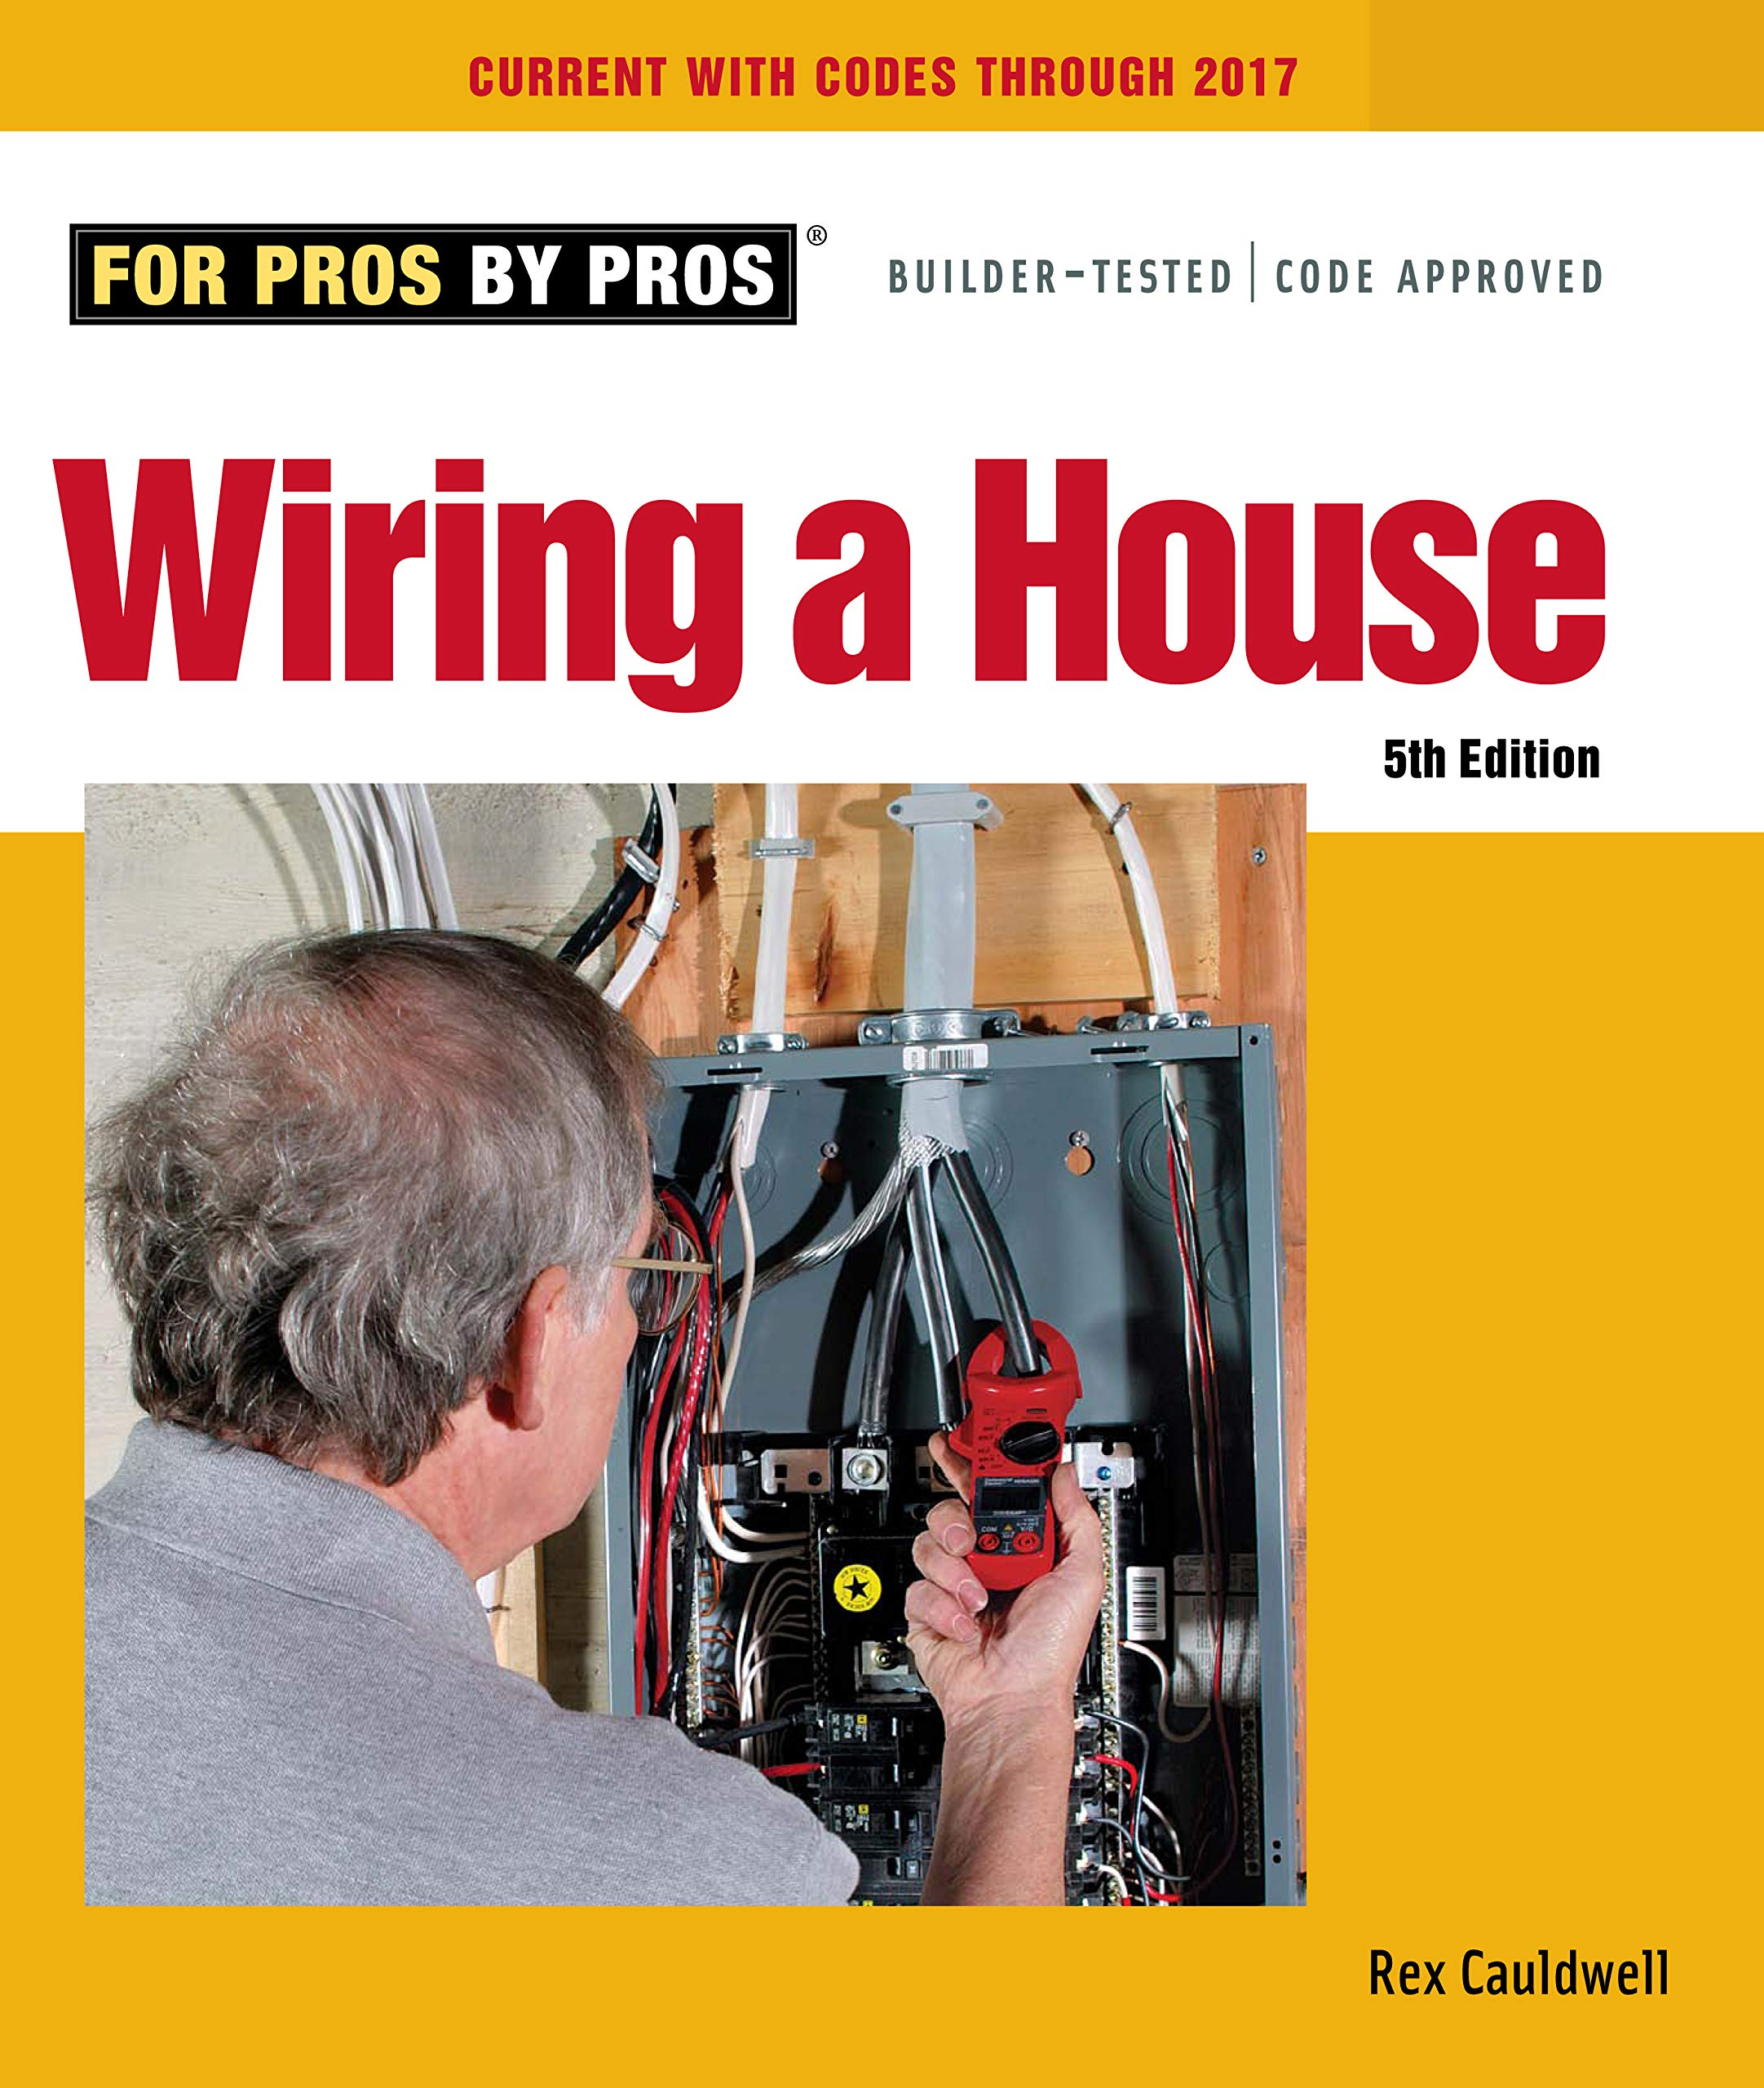 Wiring A House 5th Edition For Pros By Pros Cauldwell Rex 9781627106740 Amazon Com Books